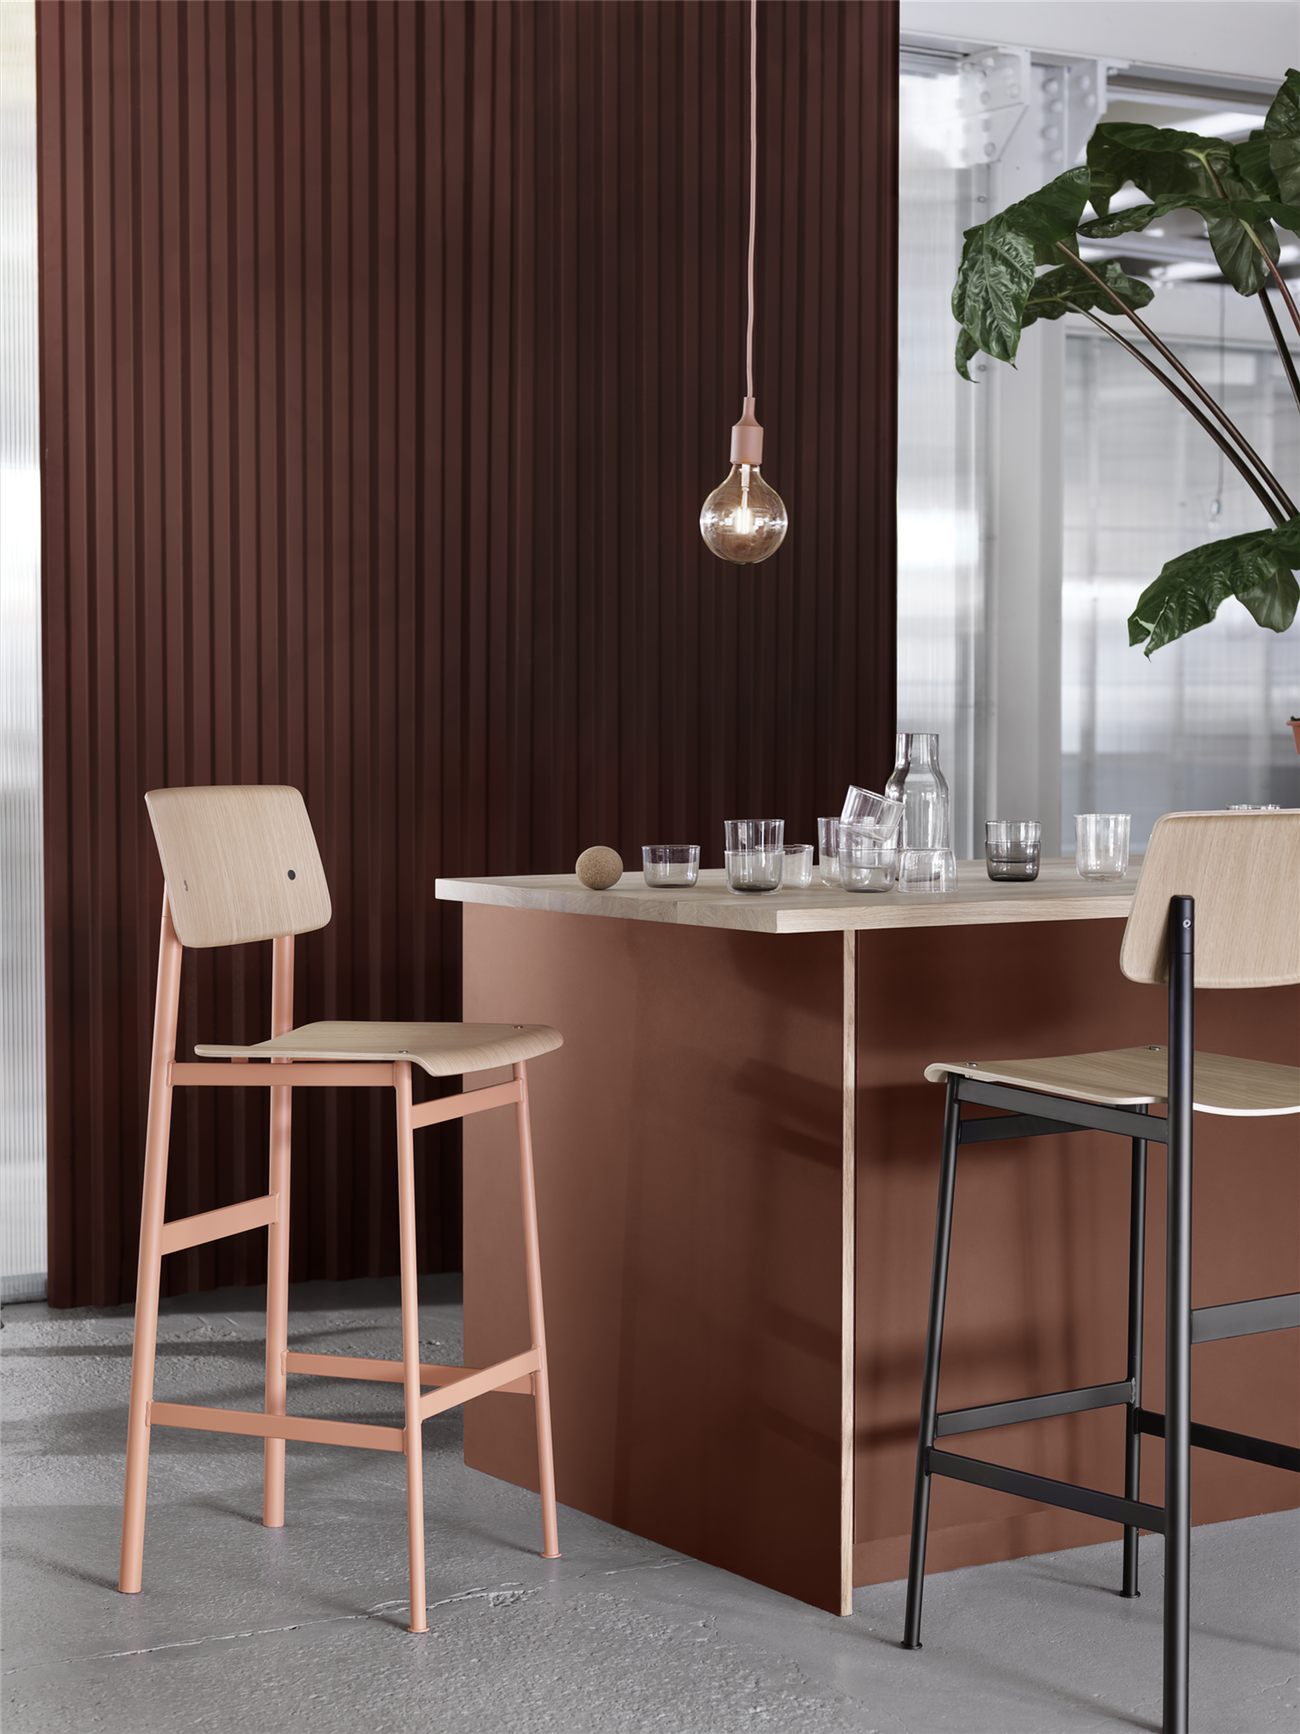 Astonishing Where To Find The Best Bar Stools The Domino Guide Machost Co Dining Chair Design Ideas Machostcouk